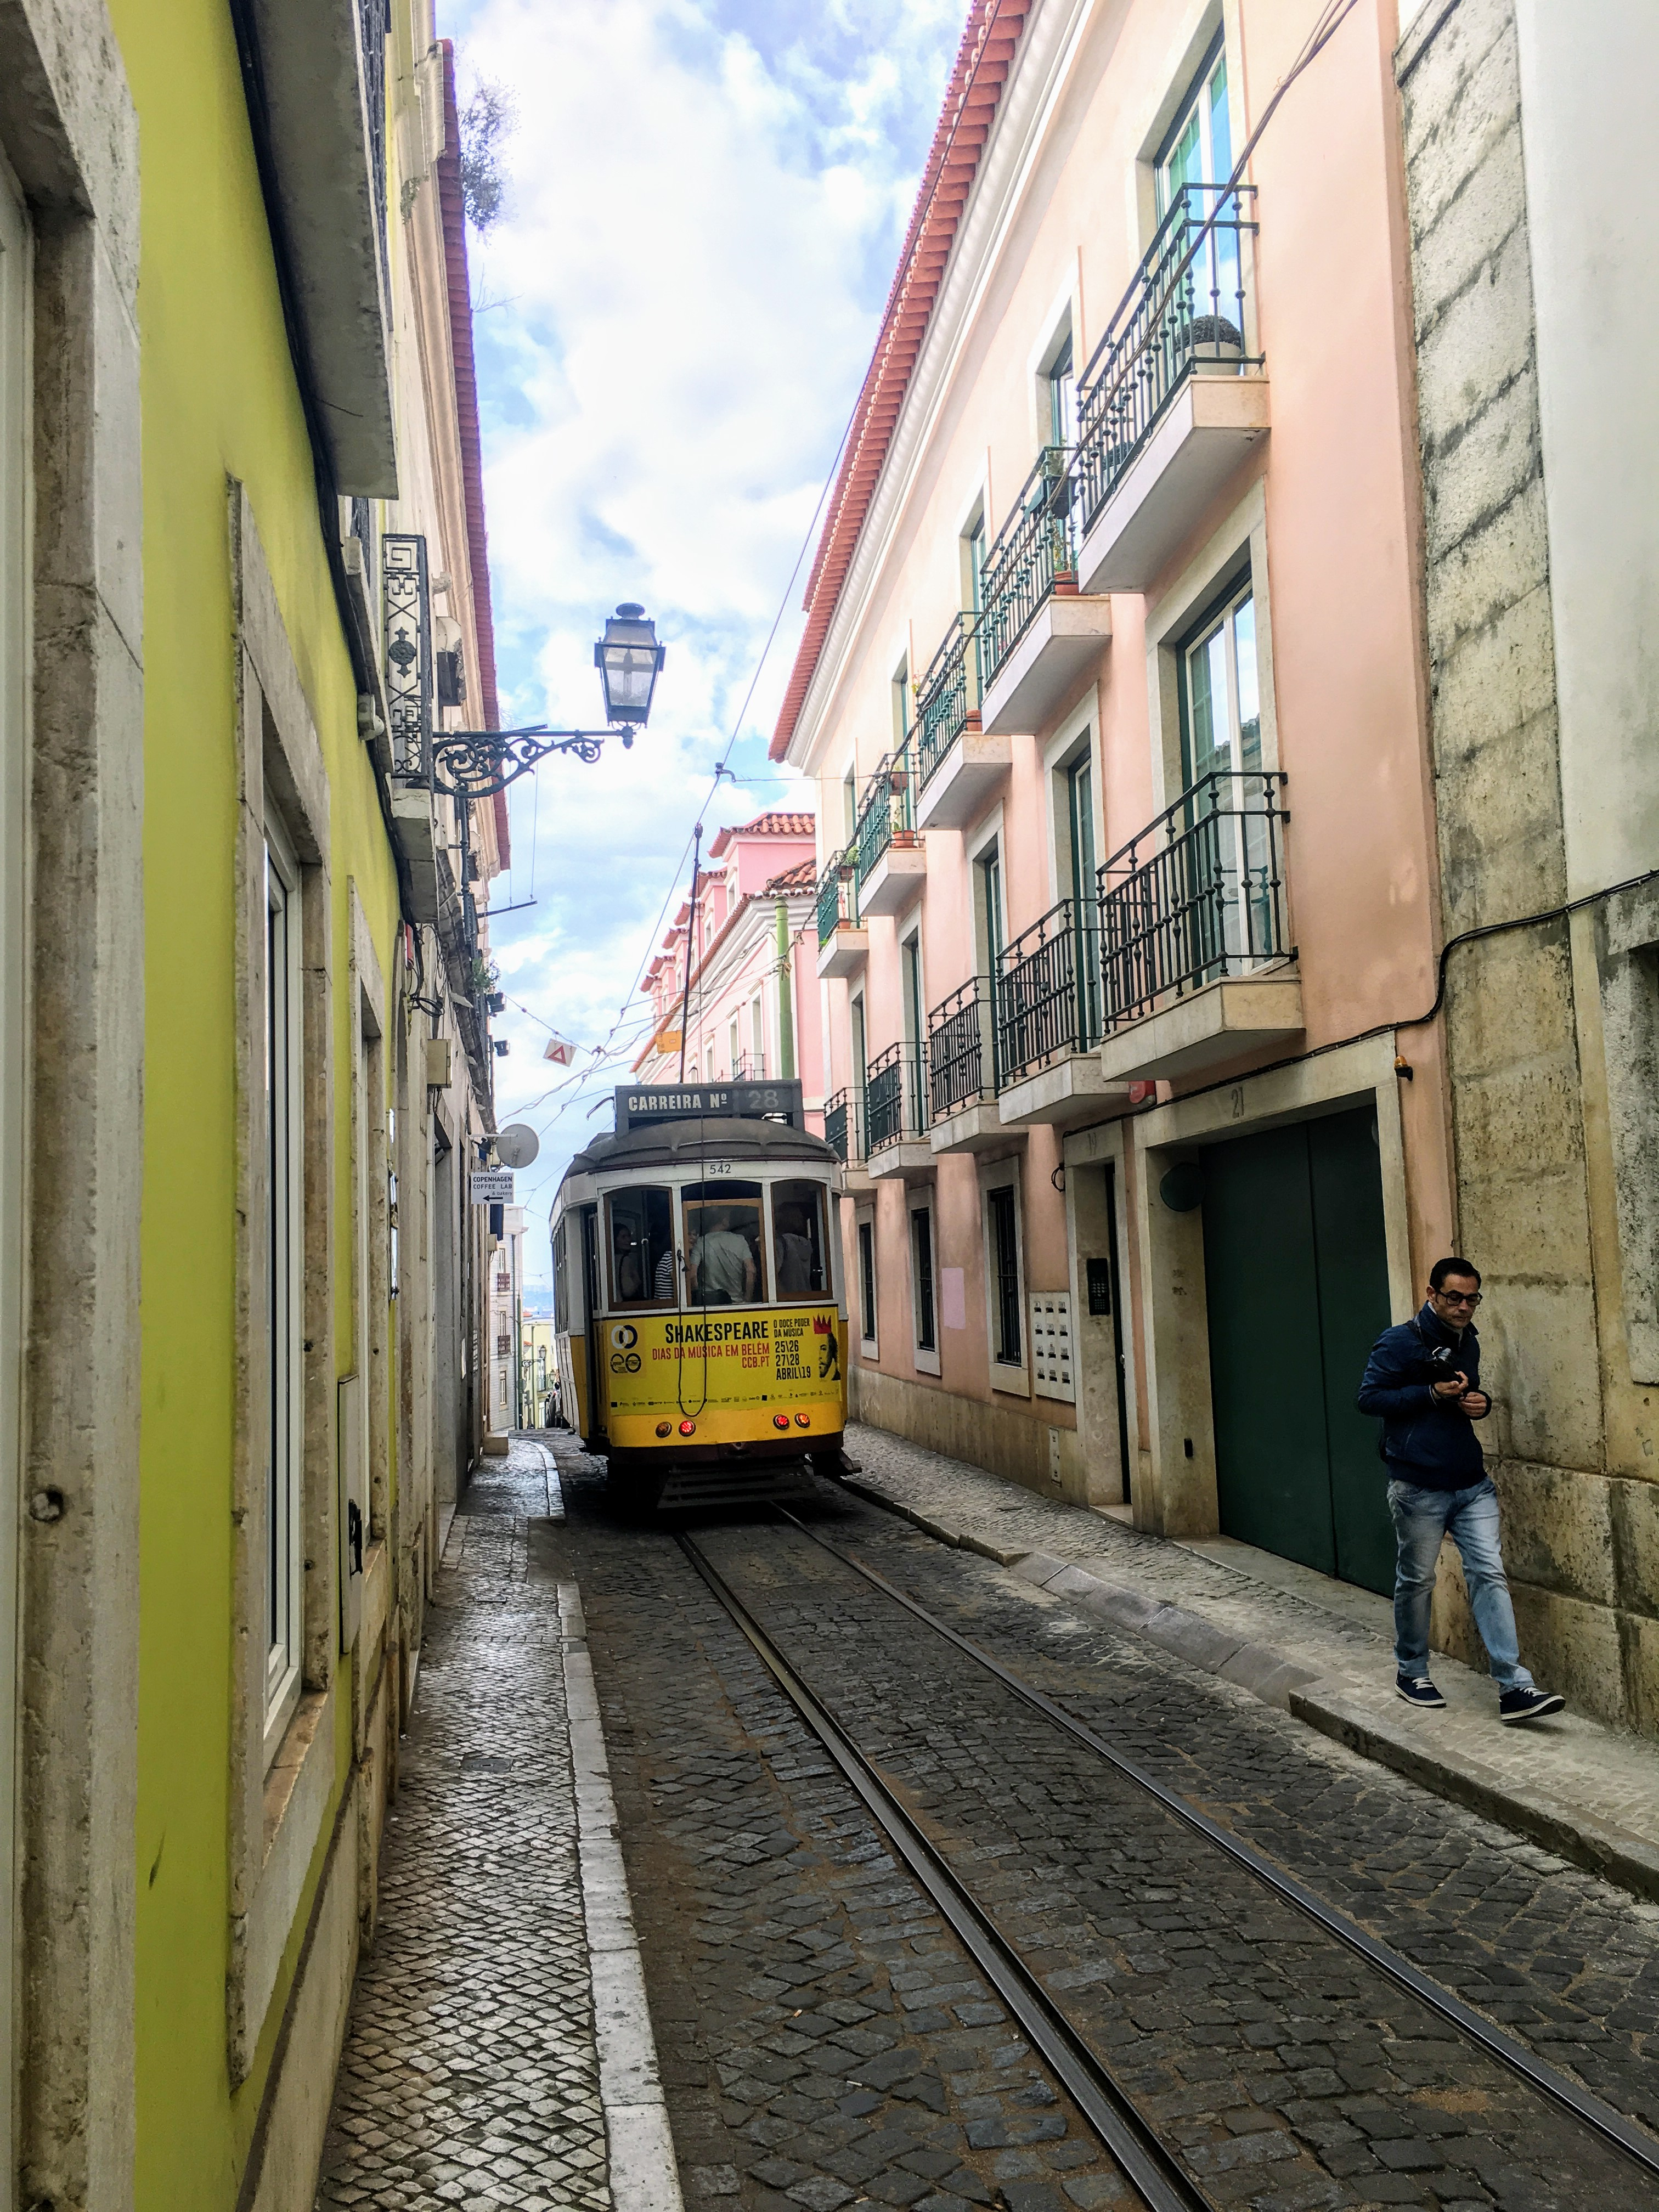 The 28 tram on its way through Alfama